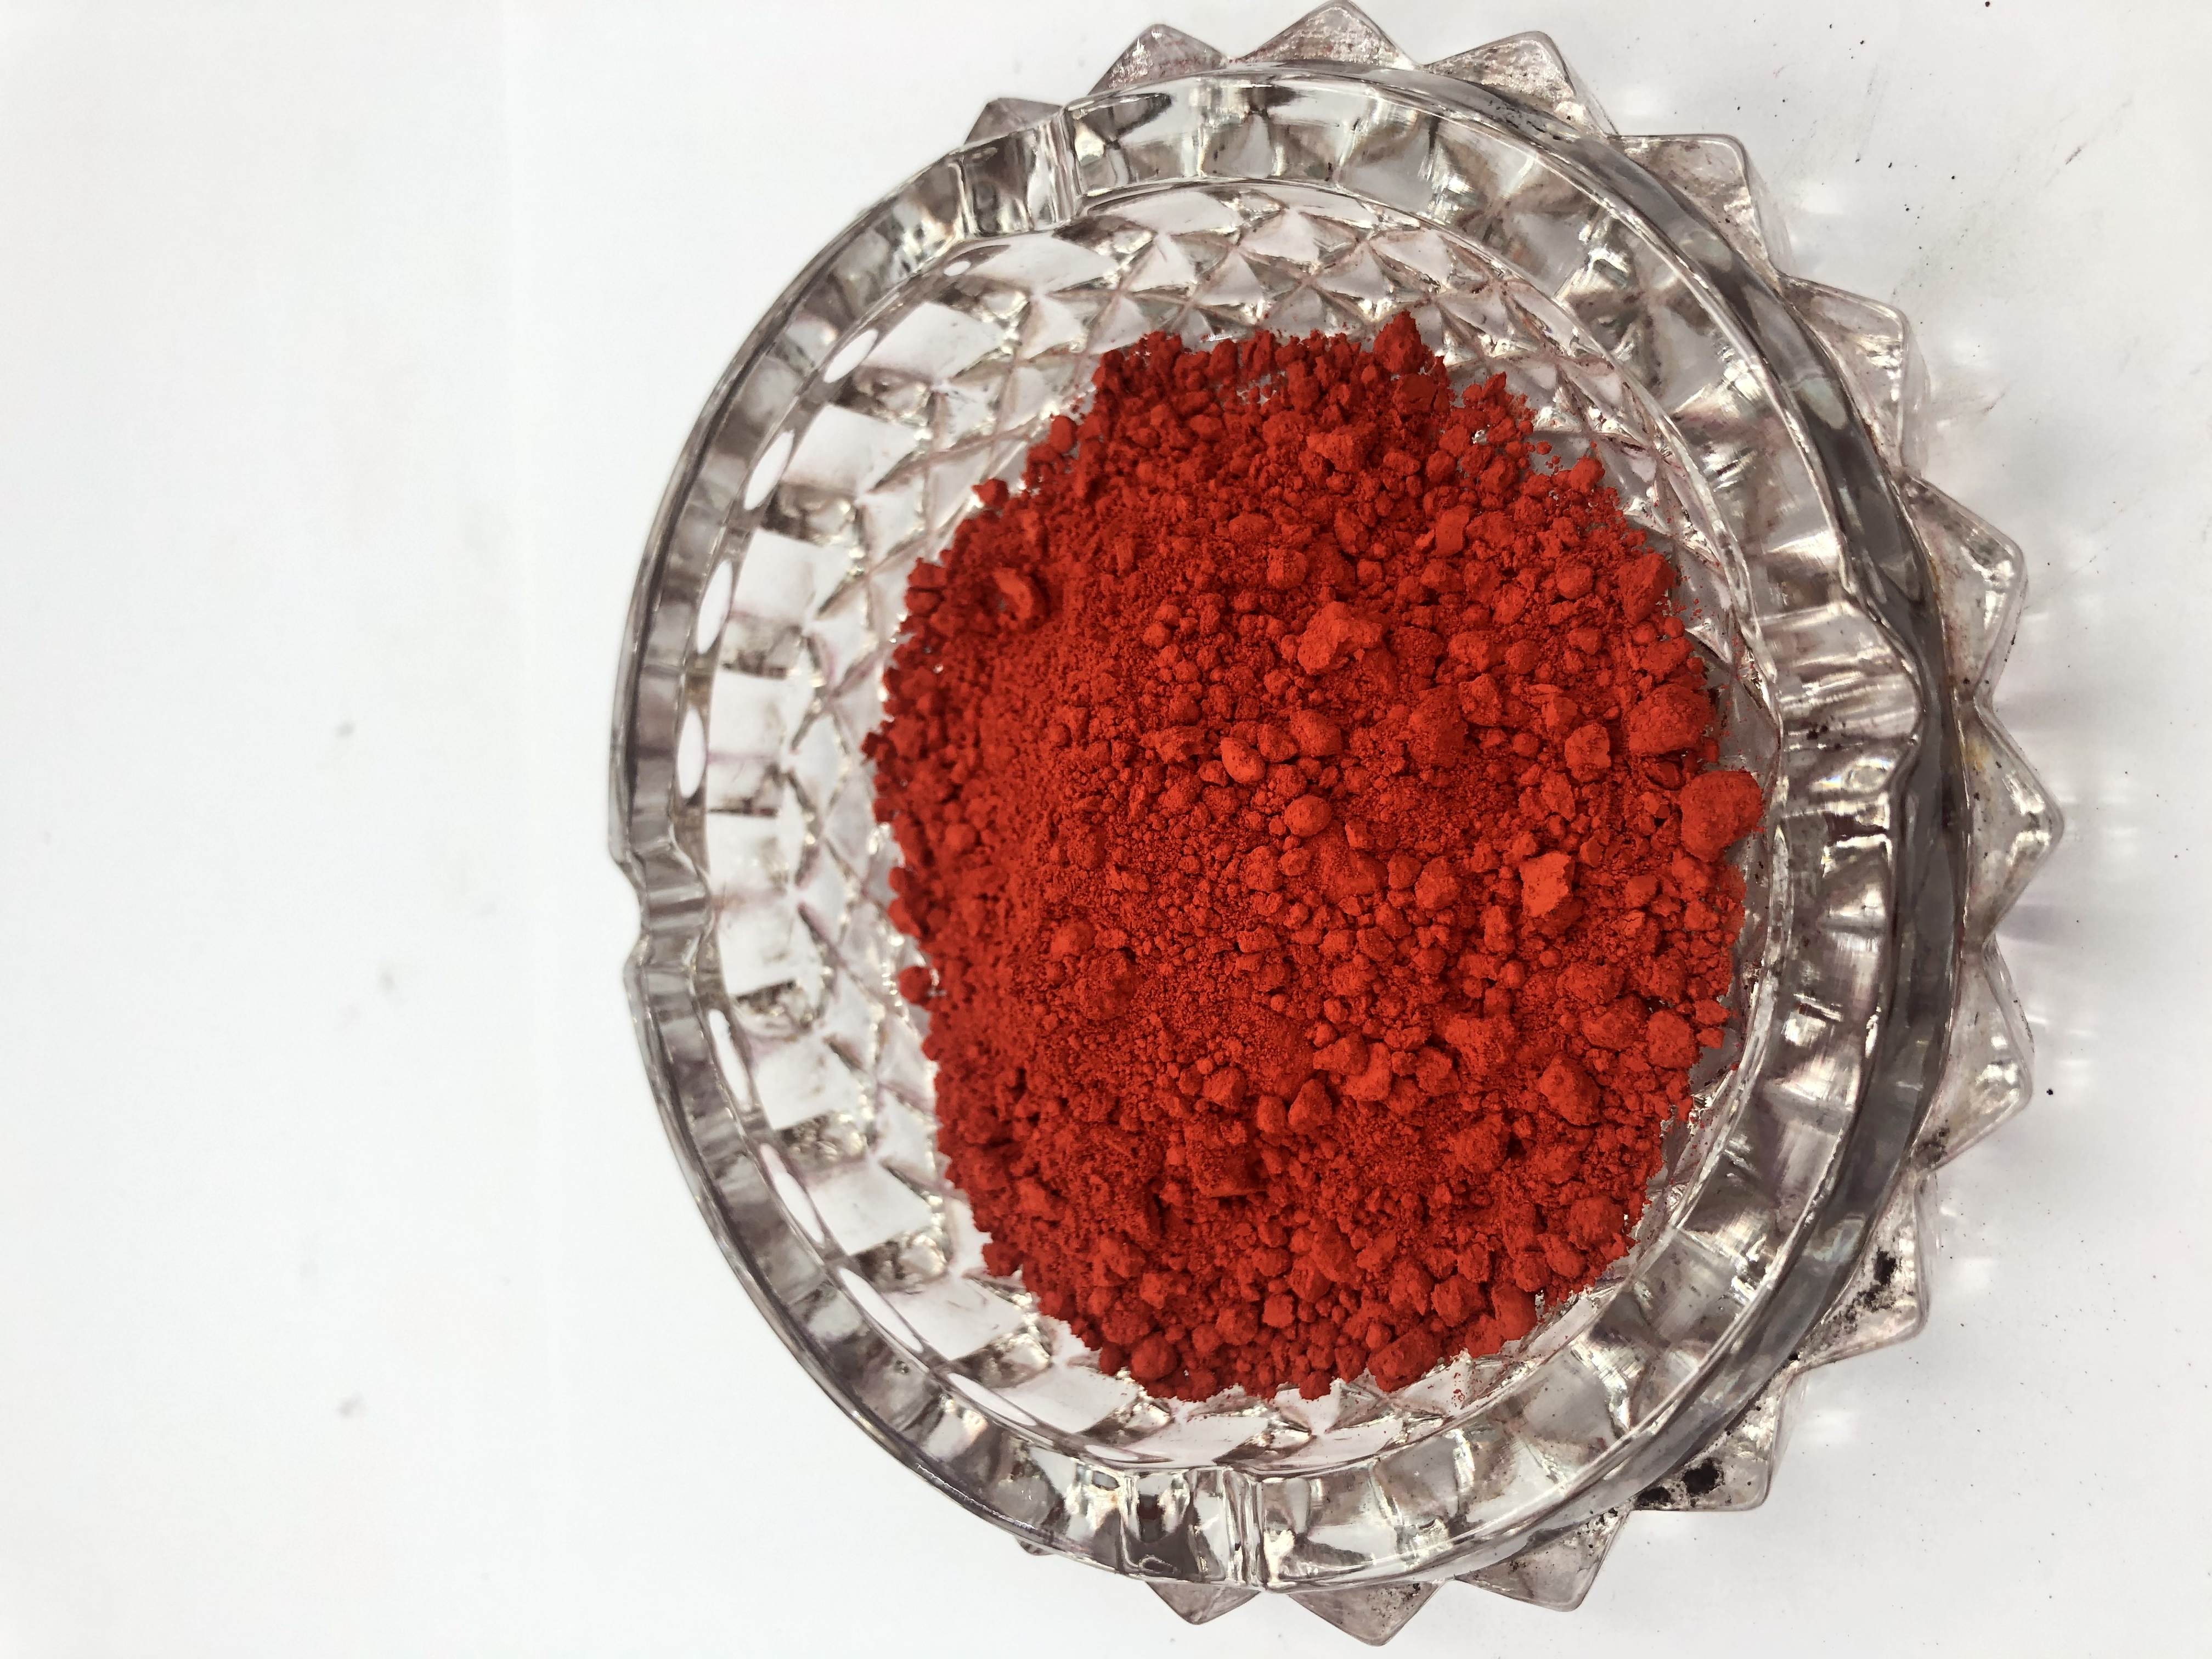 Red 81135 Yellowish Red Good Acid And Alkali Resistance for PS HISP ABS PC Coloring